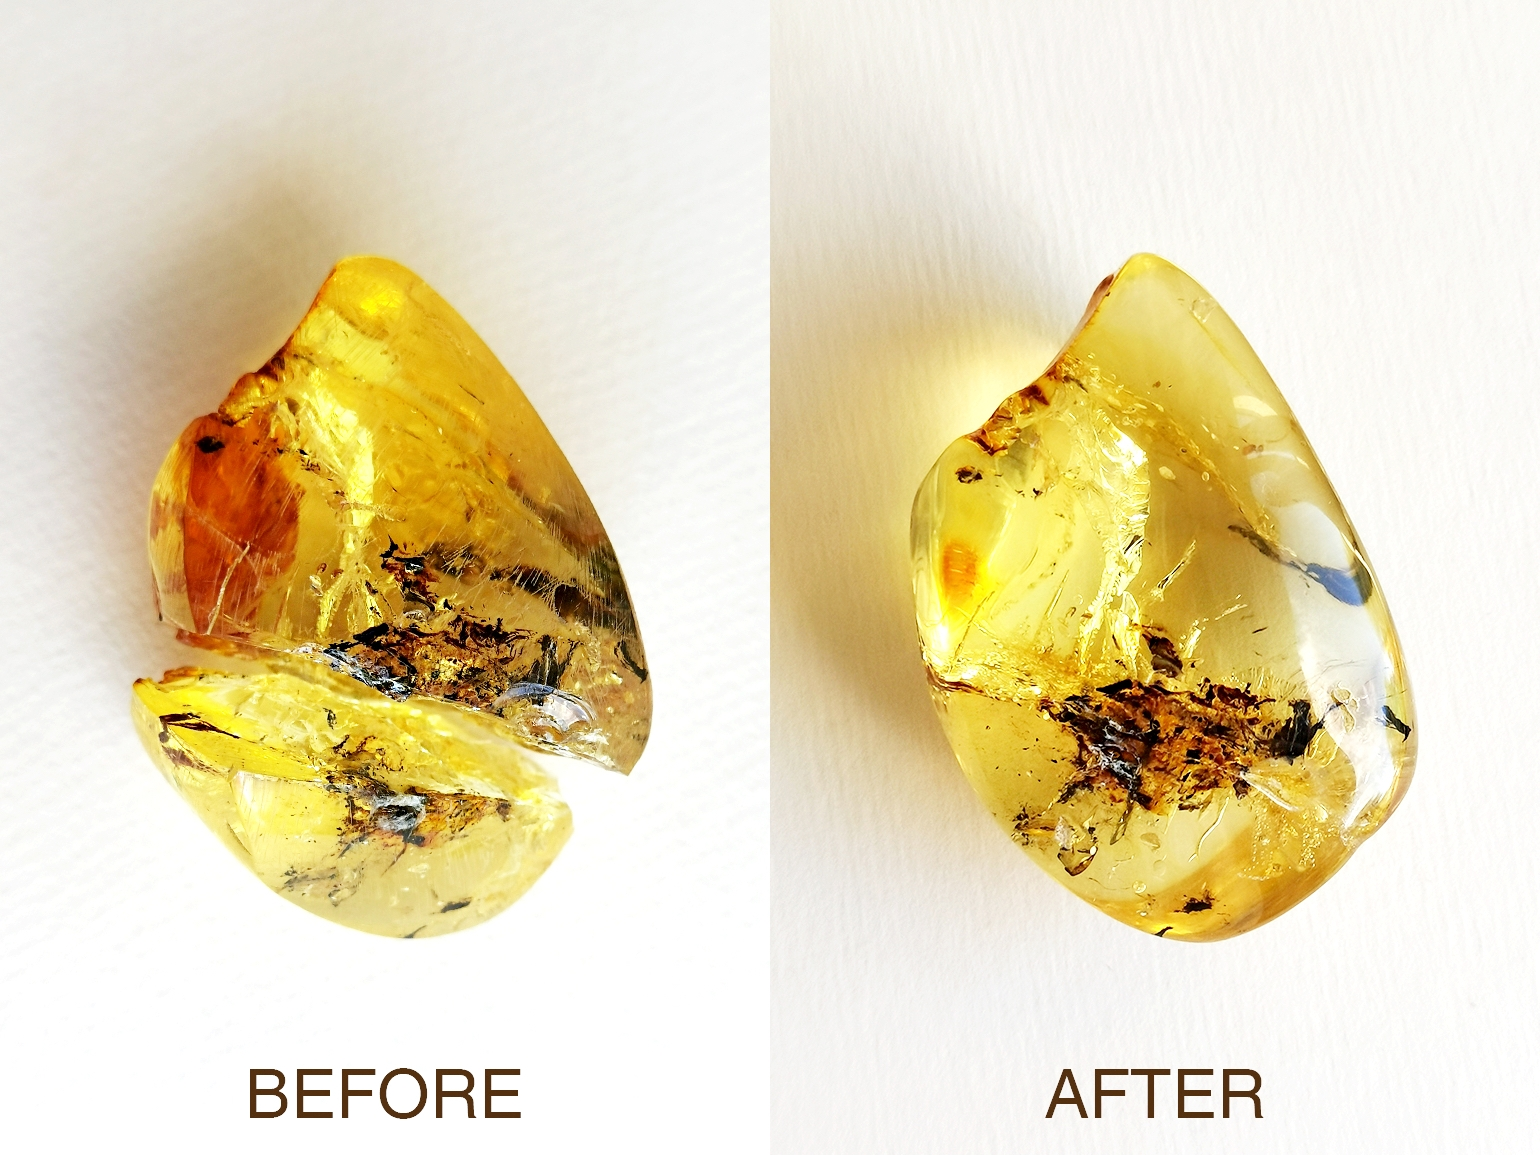 healed amber with epoxy resin 1